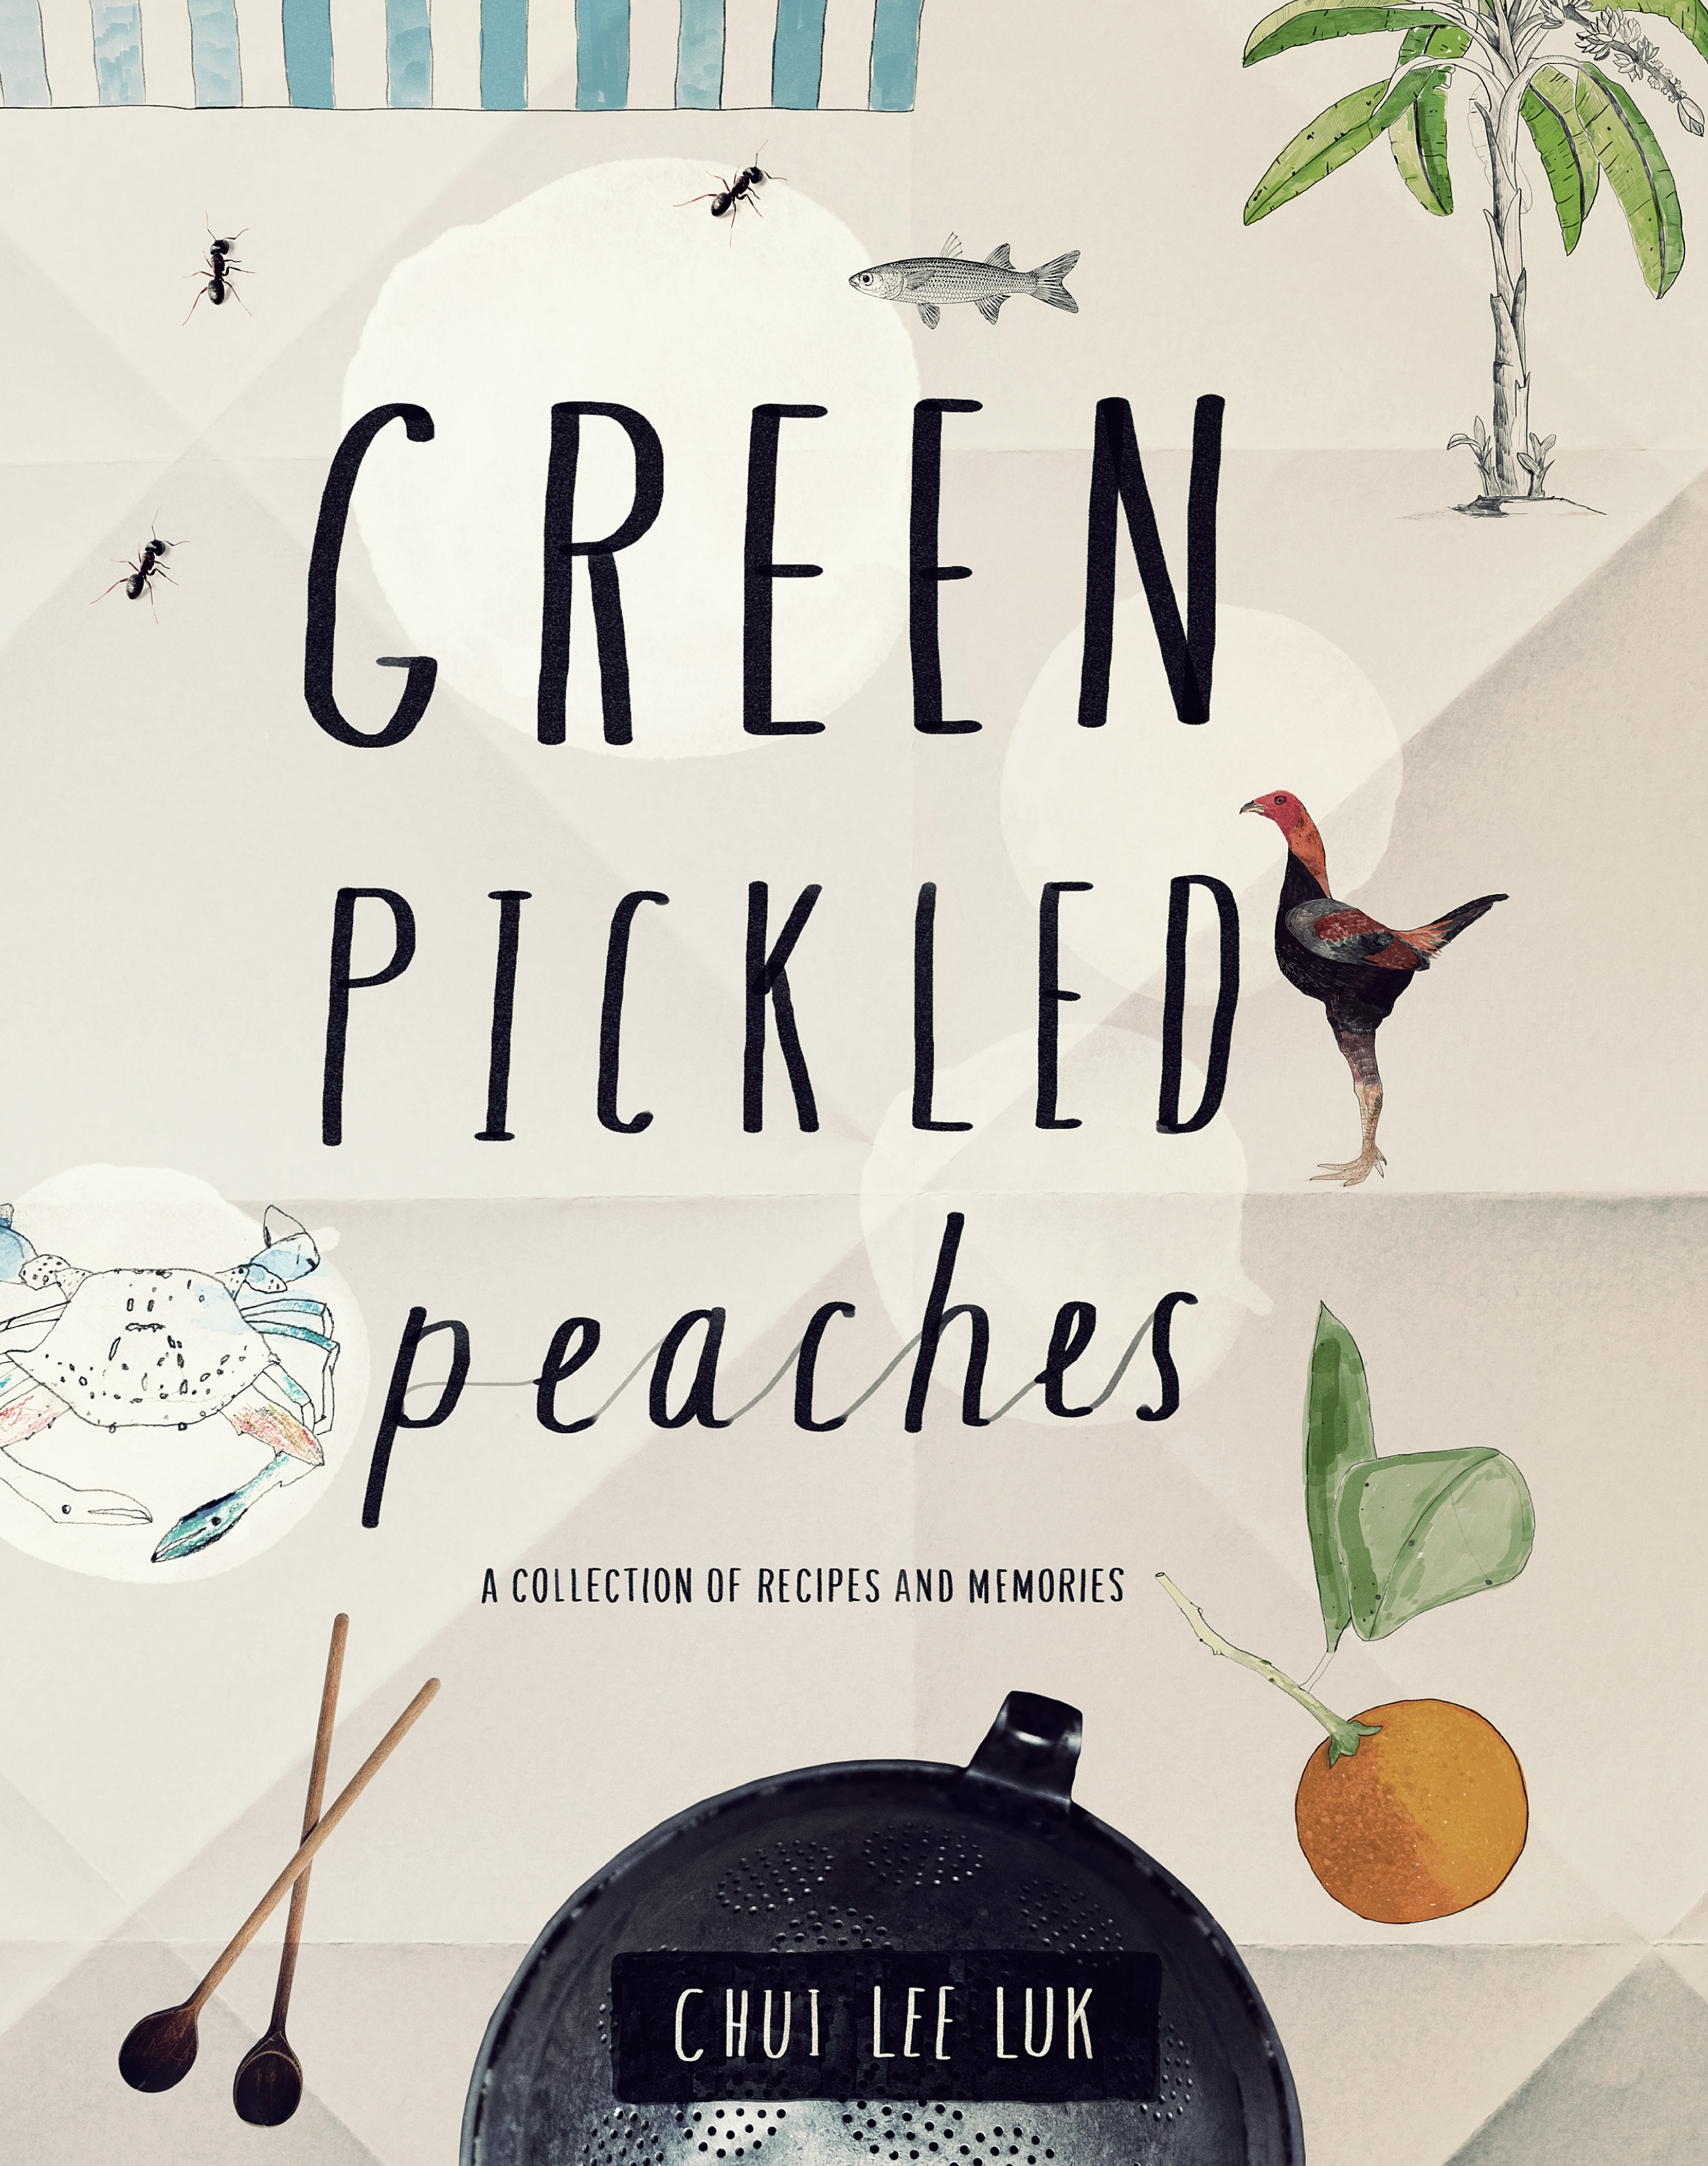 Green pickled peaches